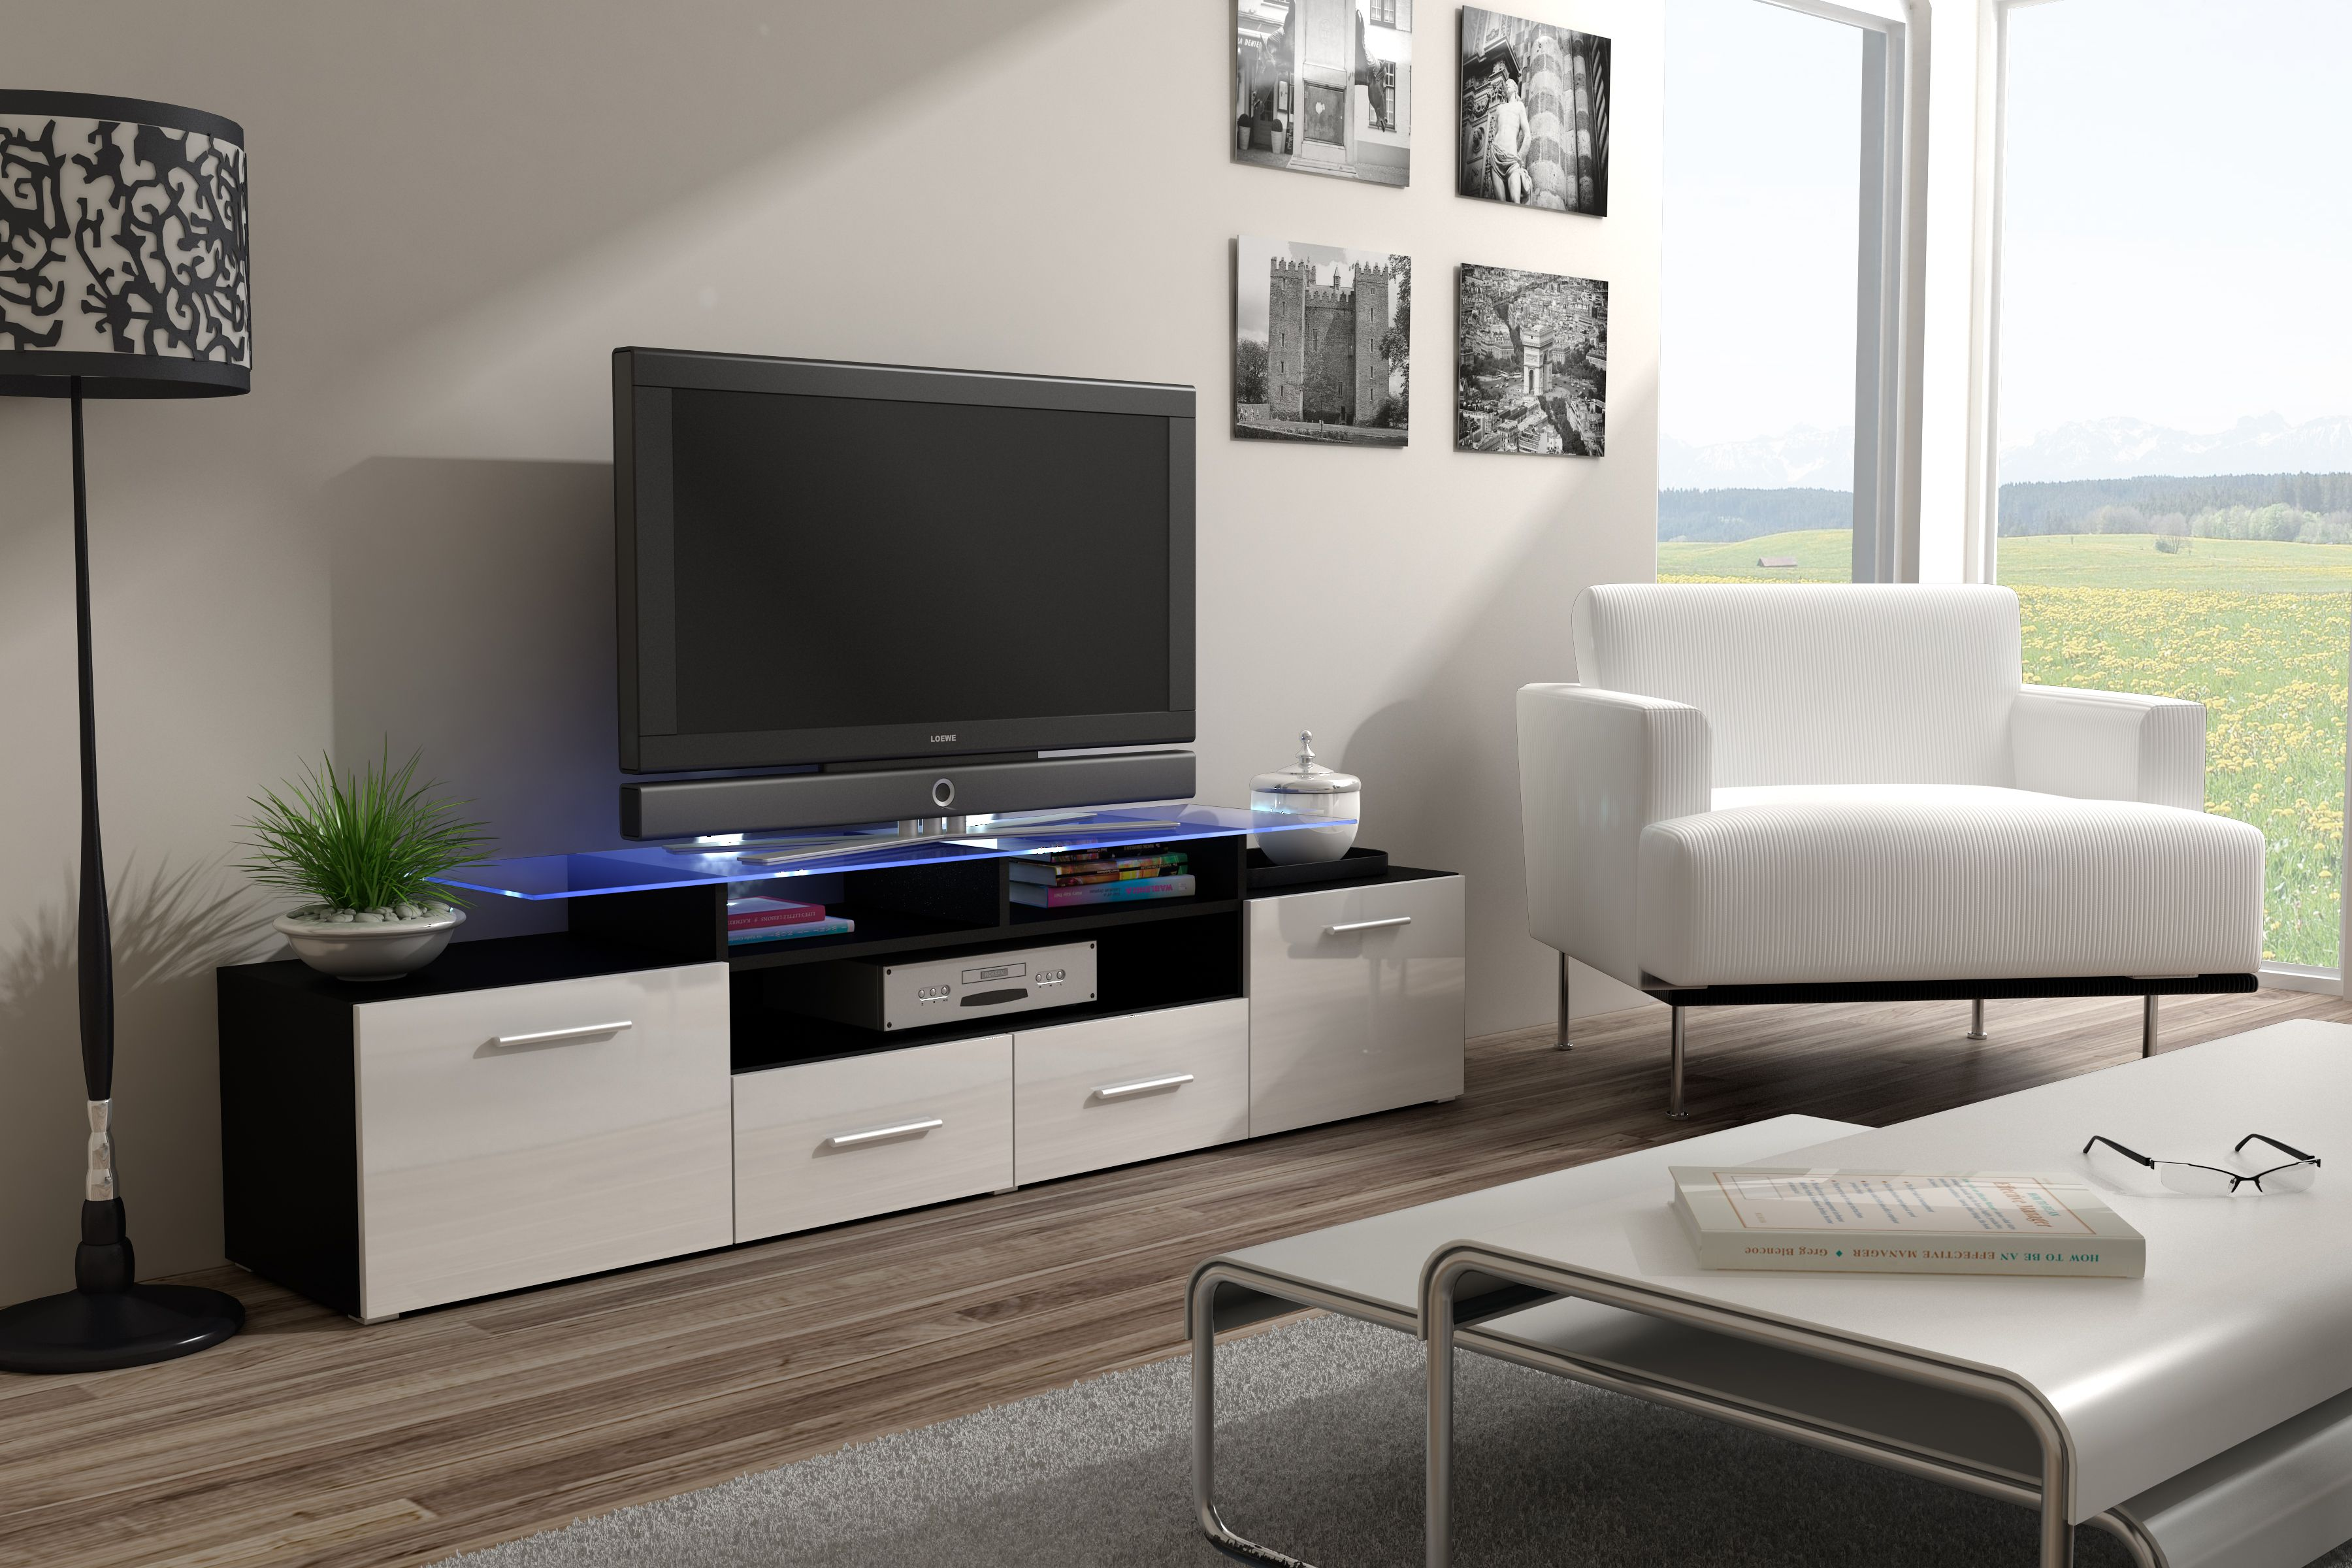 Meuble Tv Smart Blanc Et Noir Tv Cabinet Design Tv Stand Wood Grey Tv Stand